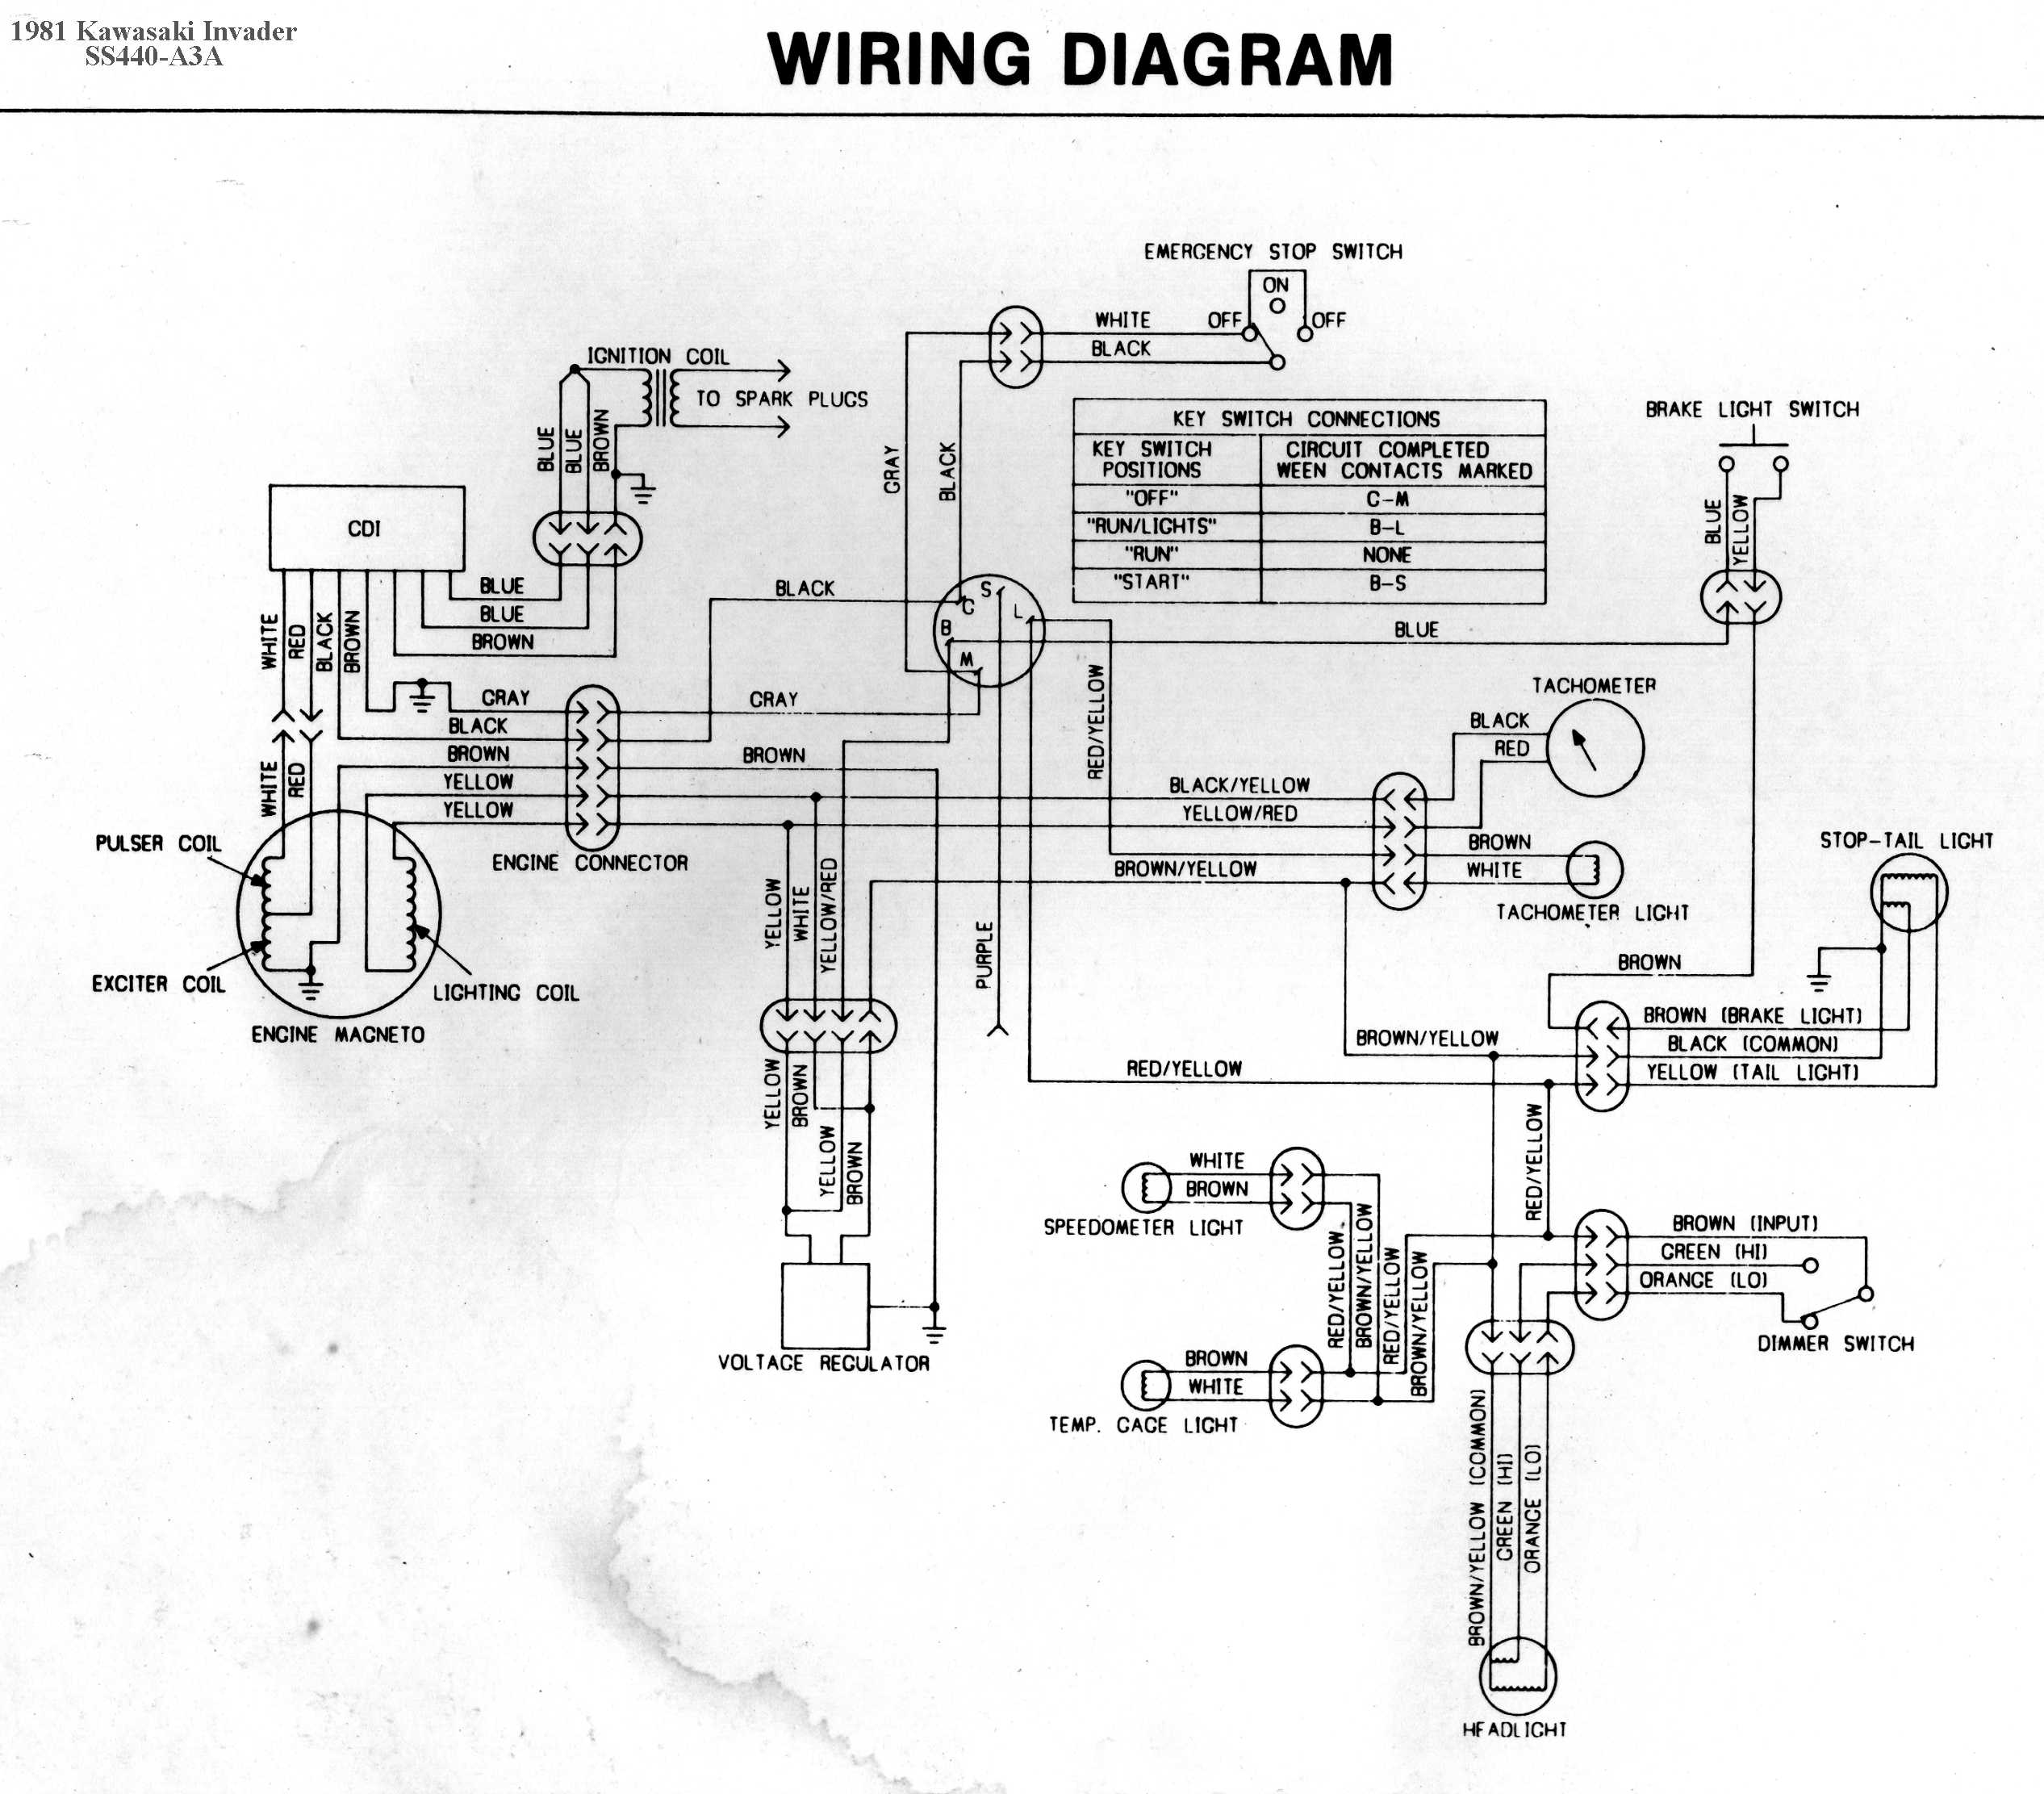 ss440a3a kawasaki invader snowmobile wiring diagrams polaris snowmobile wiring diagrams at alyssarenee.co